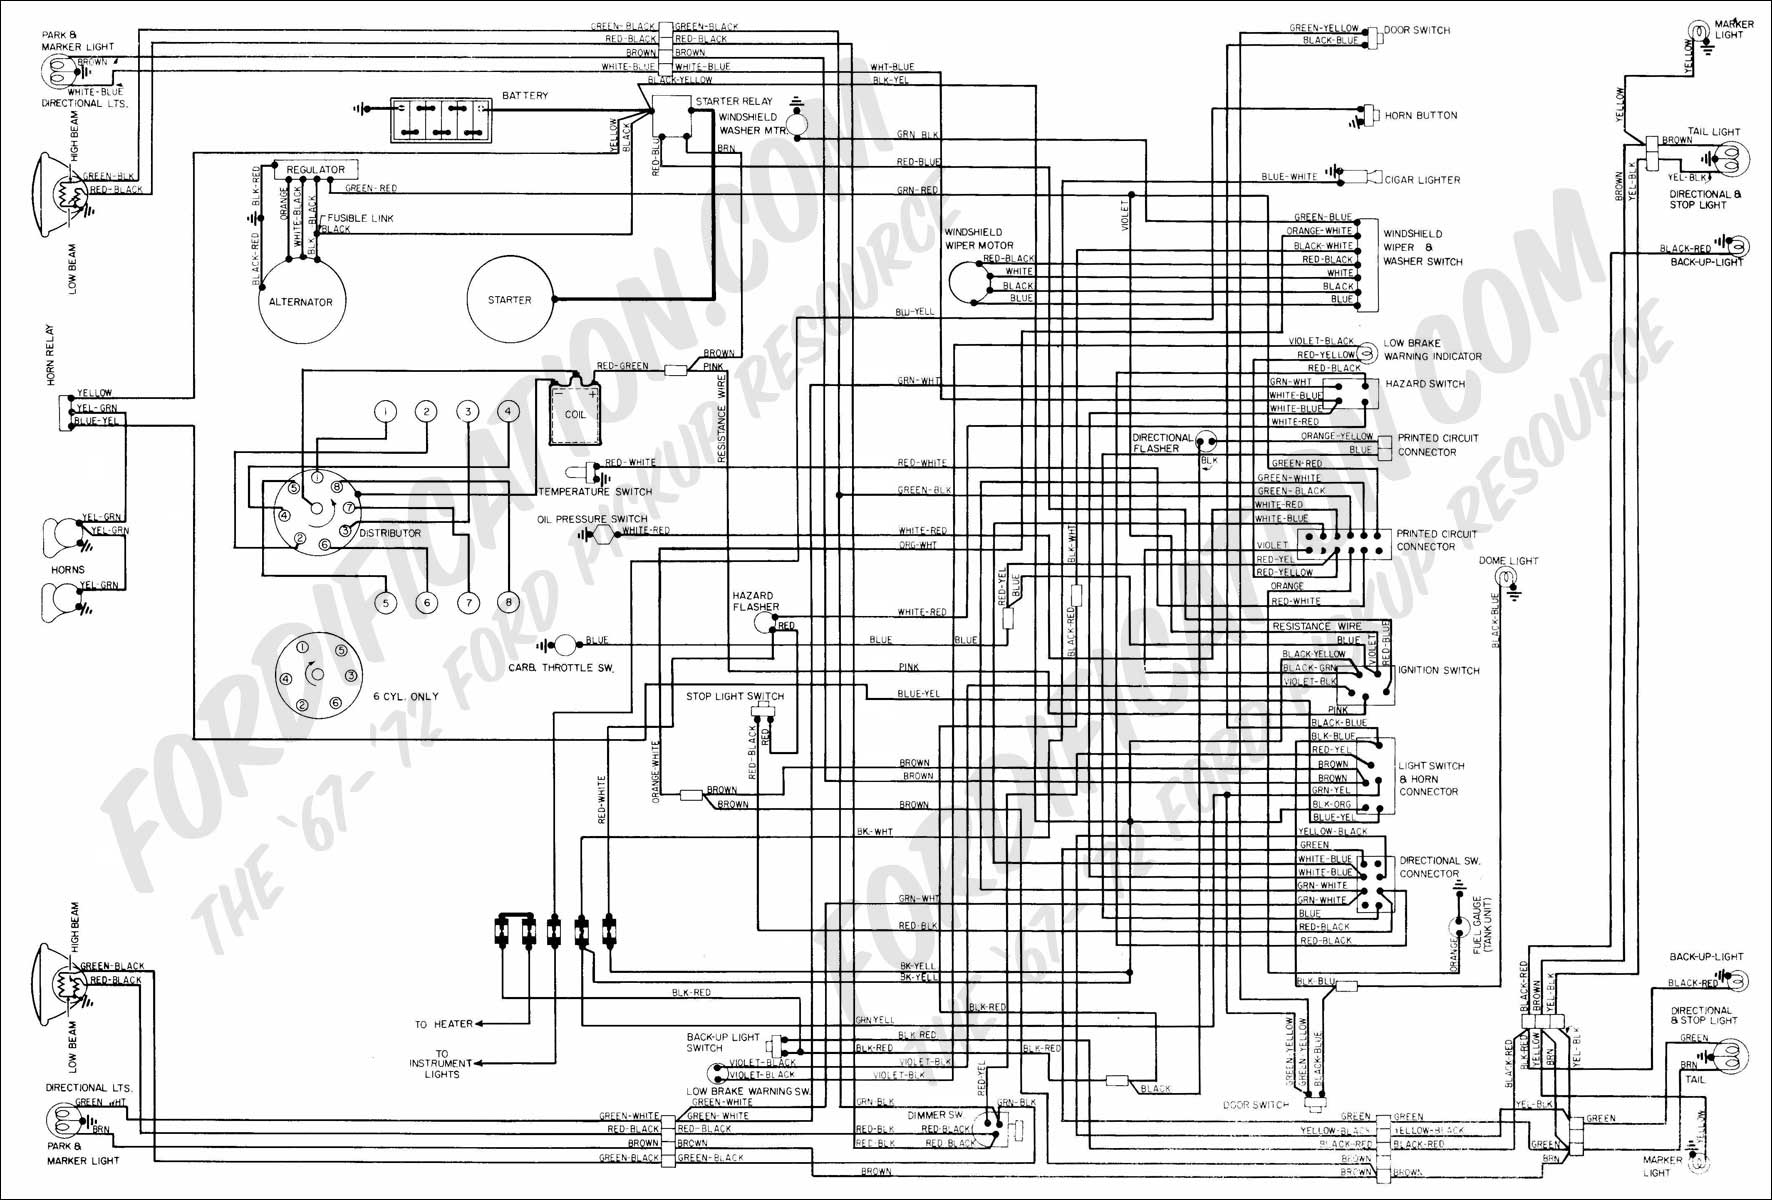 Harman Kardon Hk595 Wiring Diagram on westinghouse wiring diagrams, apc wiring diagrams, vizio wiring diagrams, ge wiring diagrams, sony wiring diagrams, panasonic wiring diagrams, celestion wiring diagrams, yamaha wiring diagrams, nec wiring diagrams, m-audio wiring diagrams, samsung wiring diagrams, mitsubishi wiring diagrams, kenwood wiring diagrams, audiovox wiring diagrams, bose wiring diagrams, klipsch speakers wiring diagrams, kicker wiring diagrams, heathkit wiring diagrams, subwoofer wiring diagrams, lg wiring diagrams,